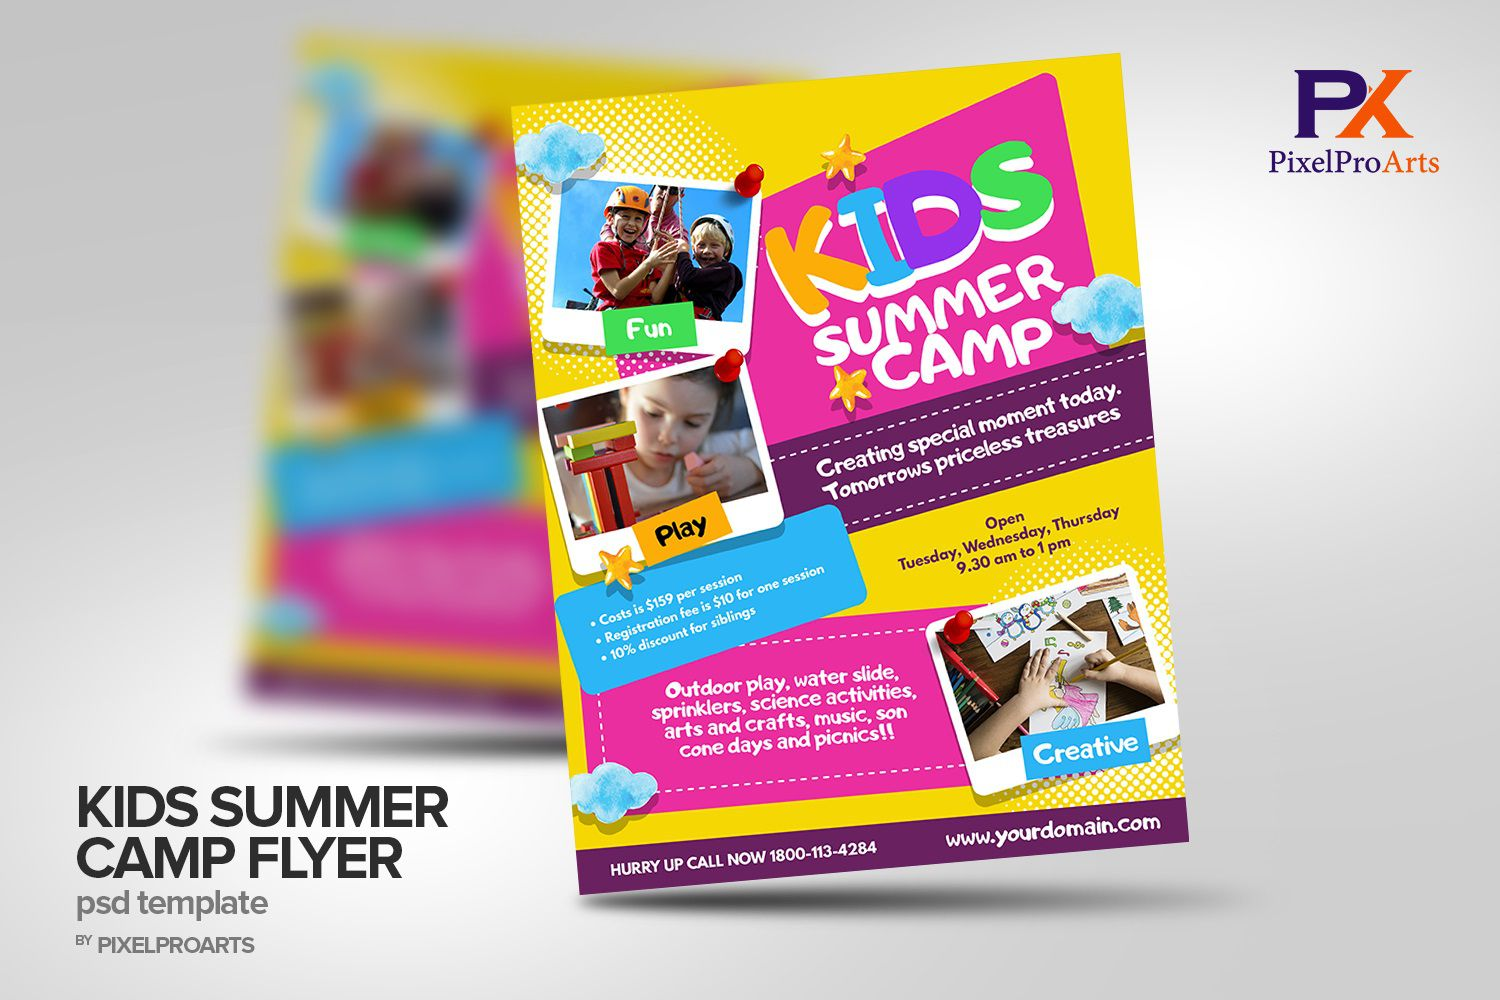 002 Wonderful Summer Camp Flyer Template Image  Day Microsoft Word BackgroundFull